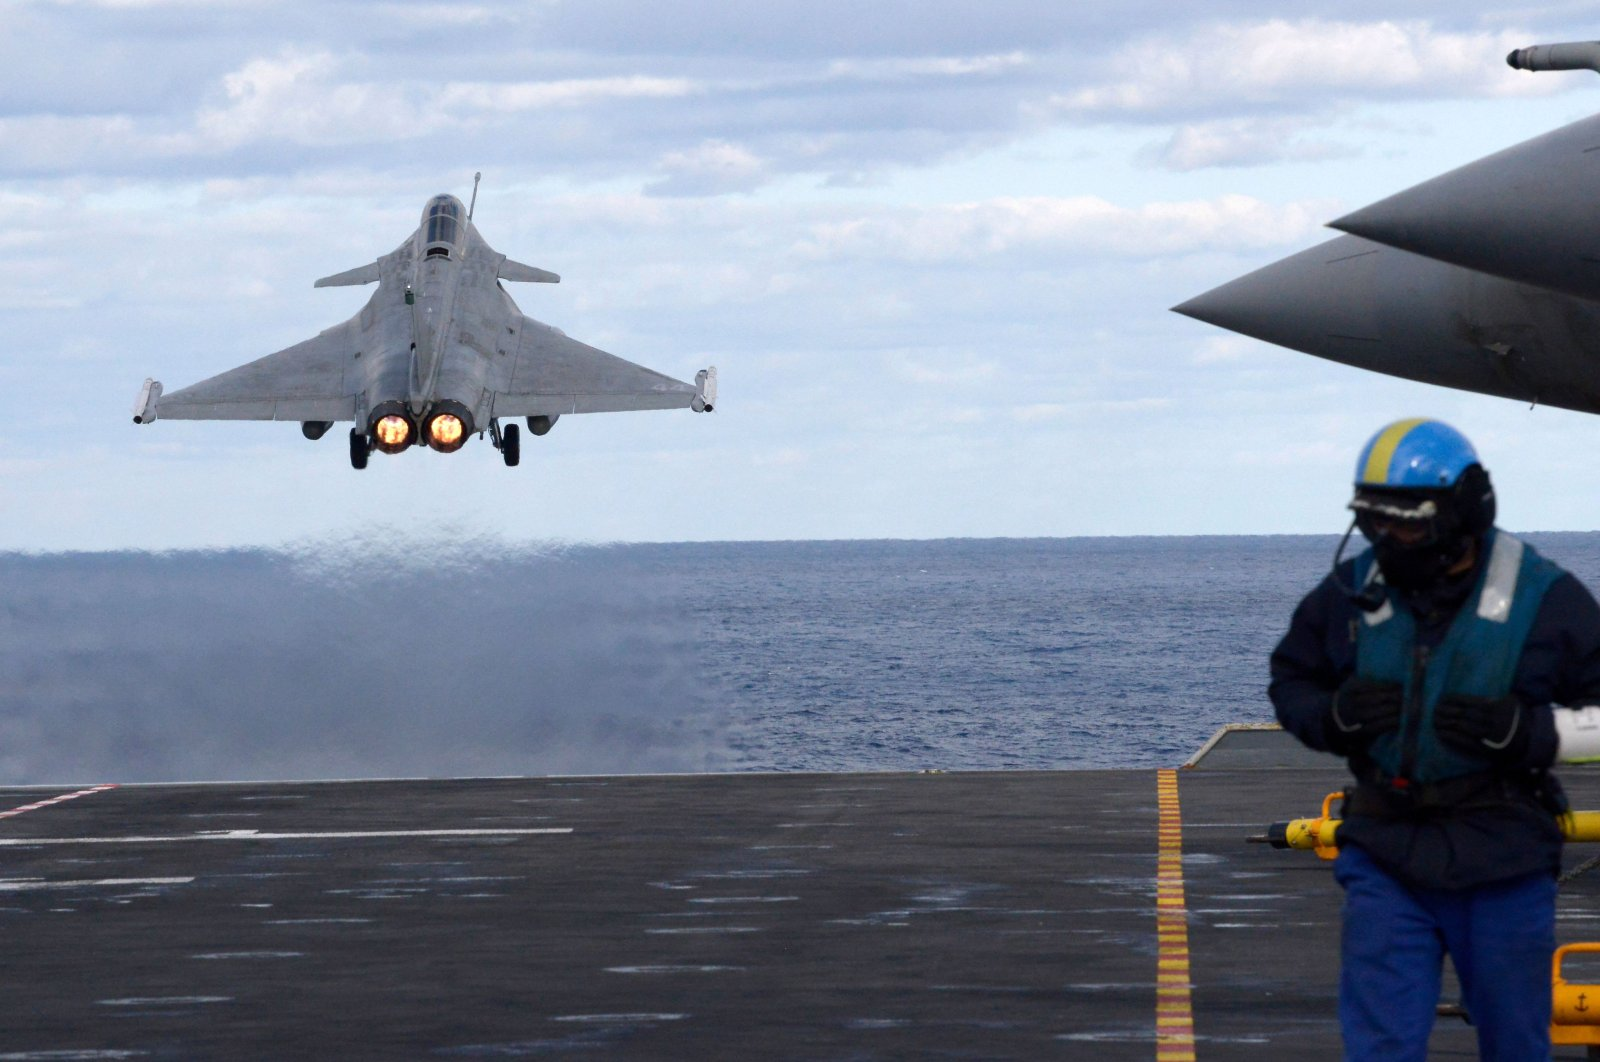 A Dassault Rafale fighter jet is catapulted from the French aircraft carrier Charles de Gaulle off the eastern coast of Cyprus in the Mediterranean Sea, Feb. 10, 2020. (AFP Photo)